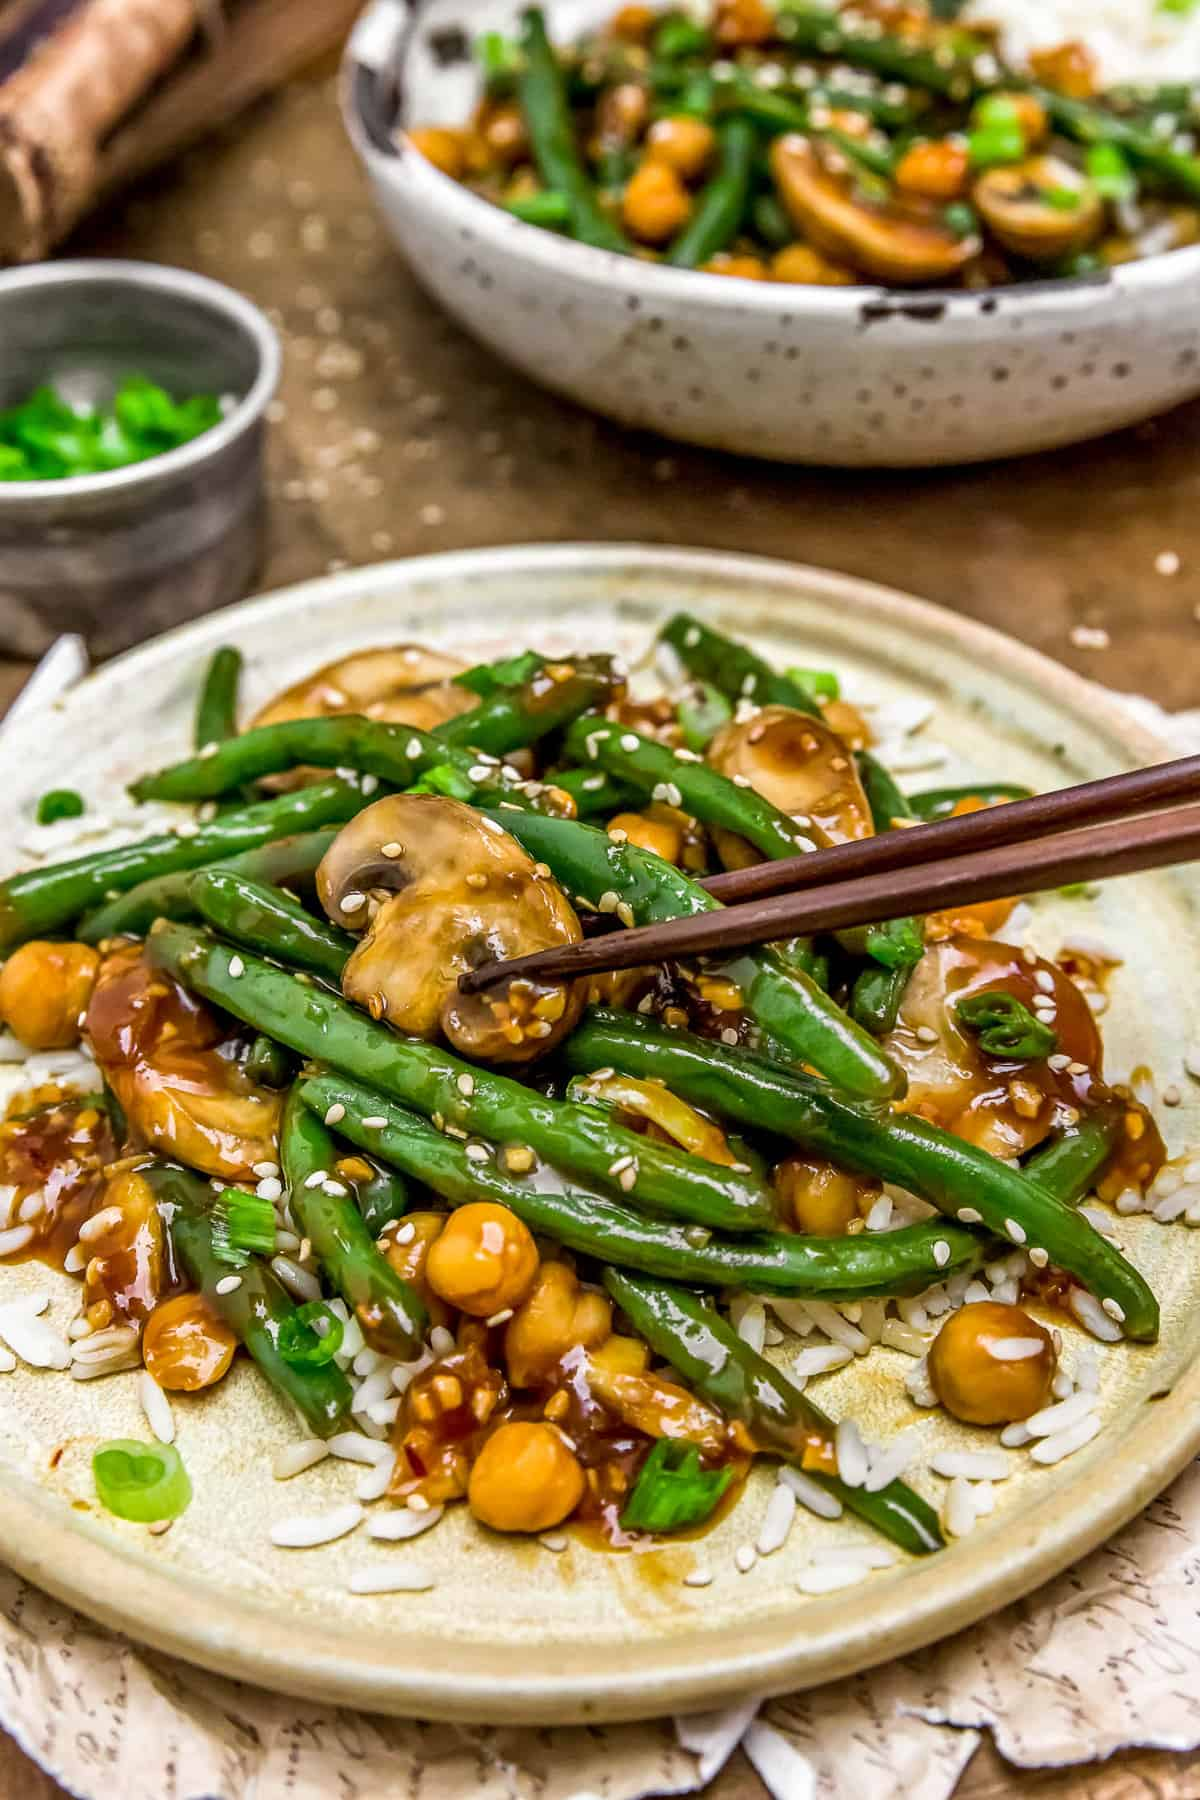 Eating Asian Green Beans and Mushrooms